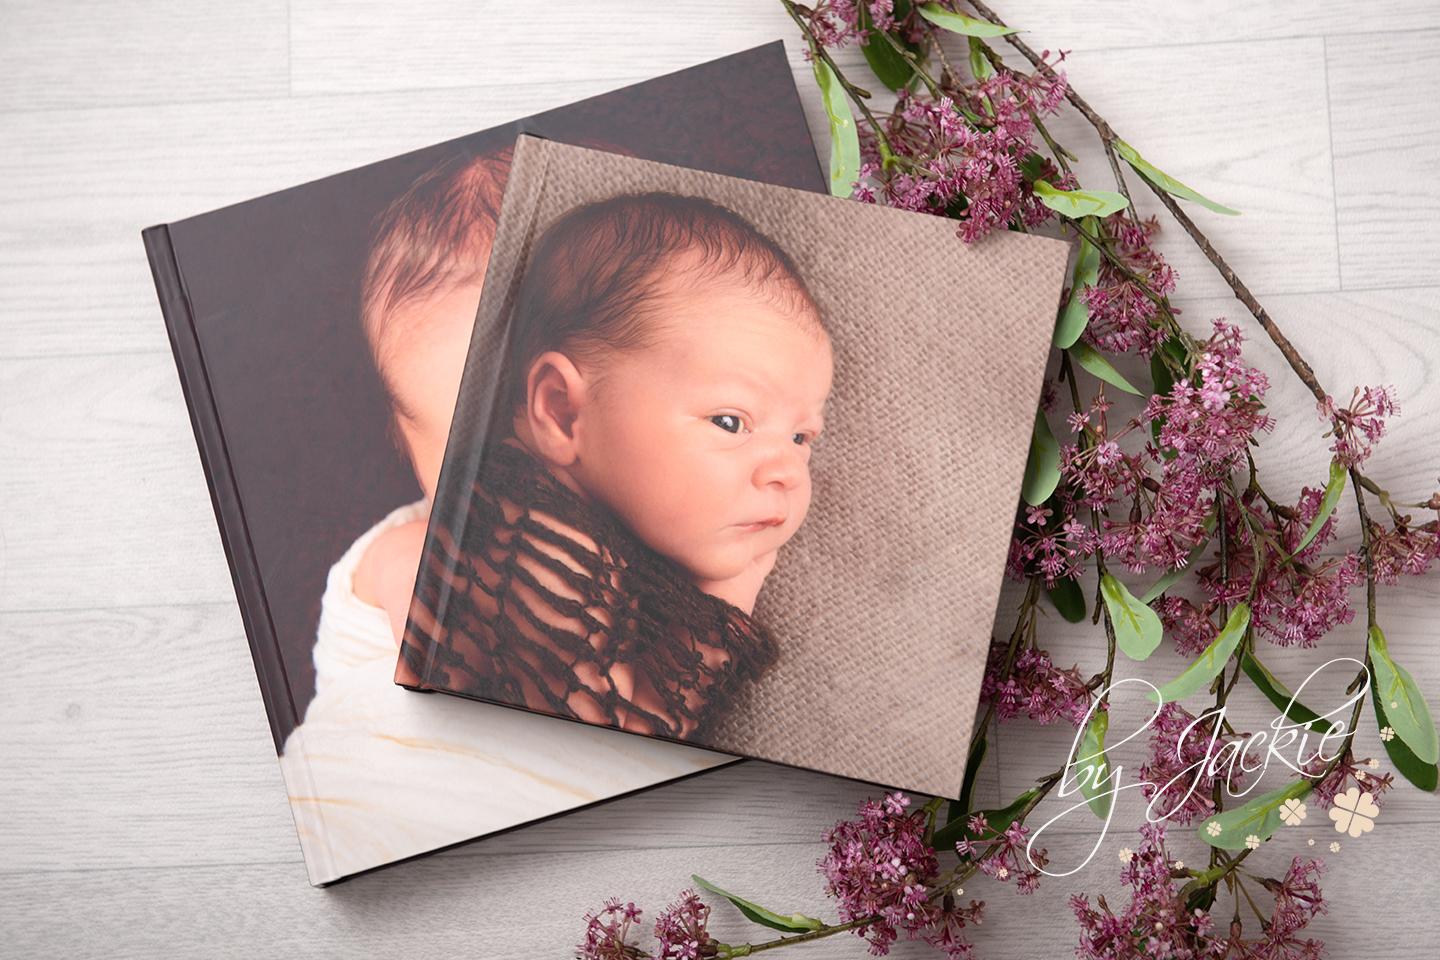 Beautiful photobook albums by Babies By Jackie